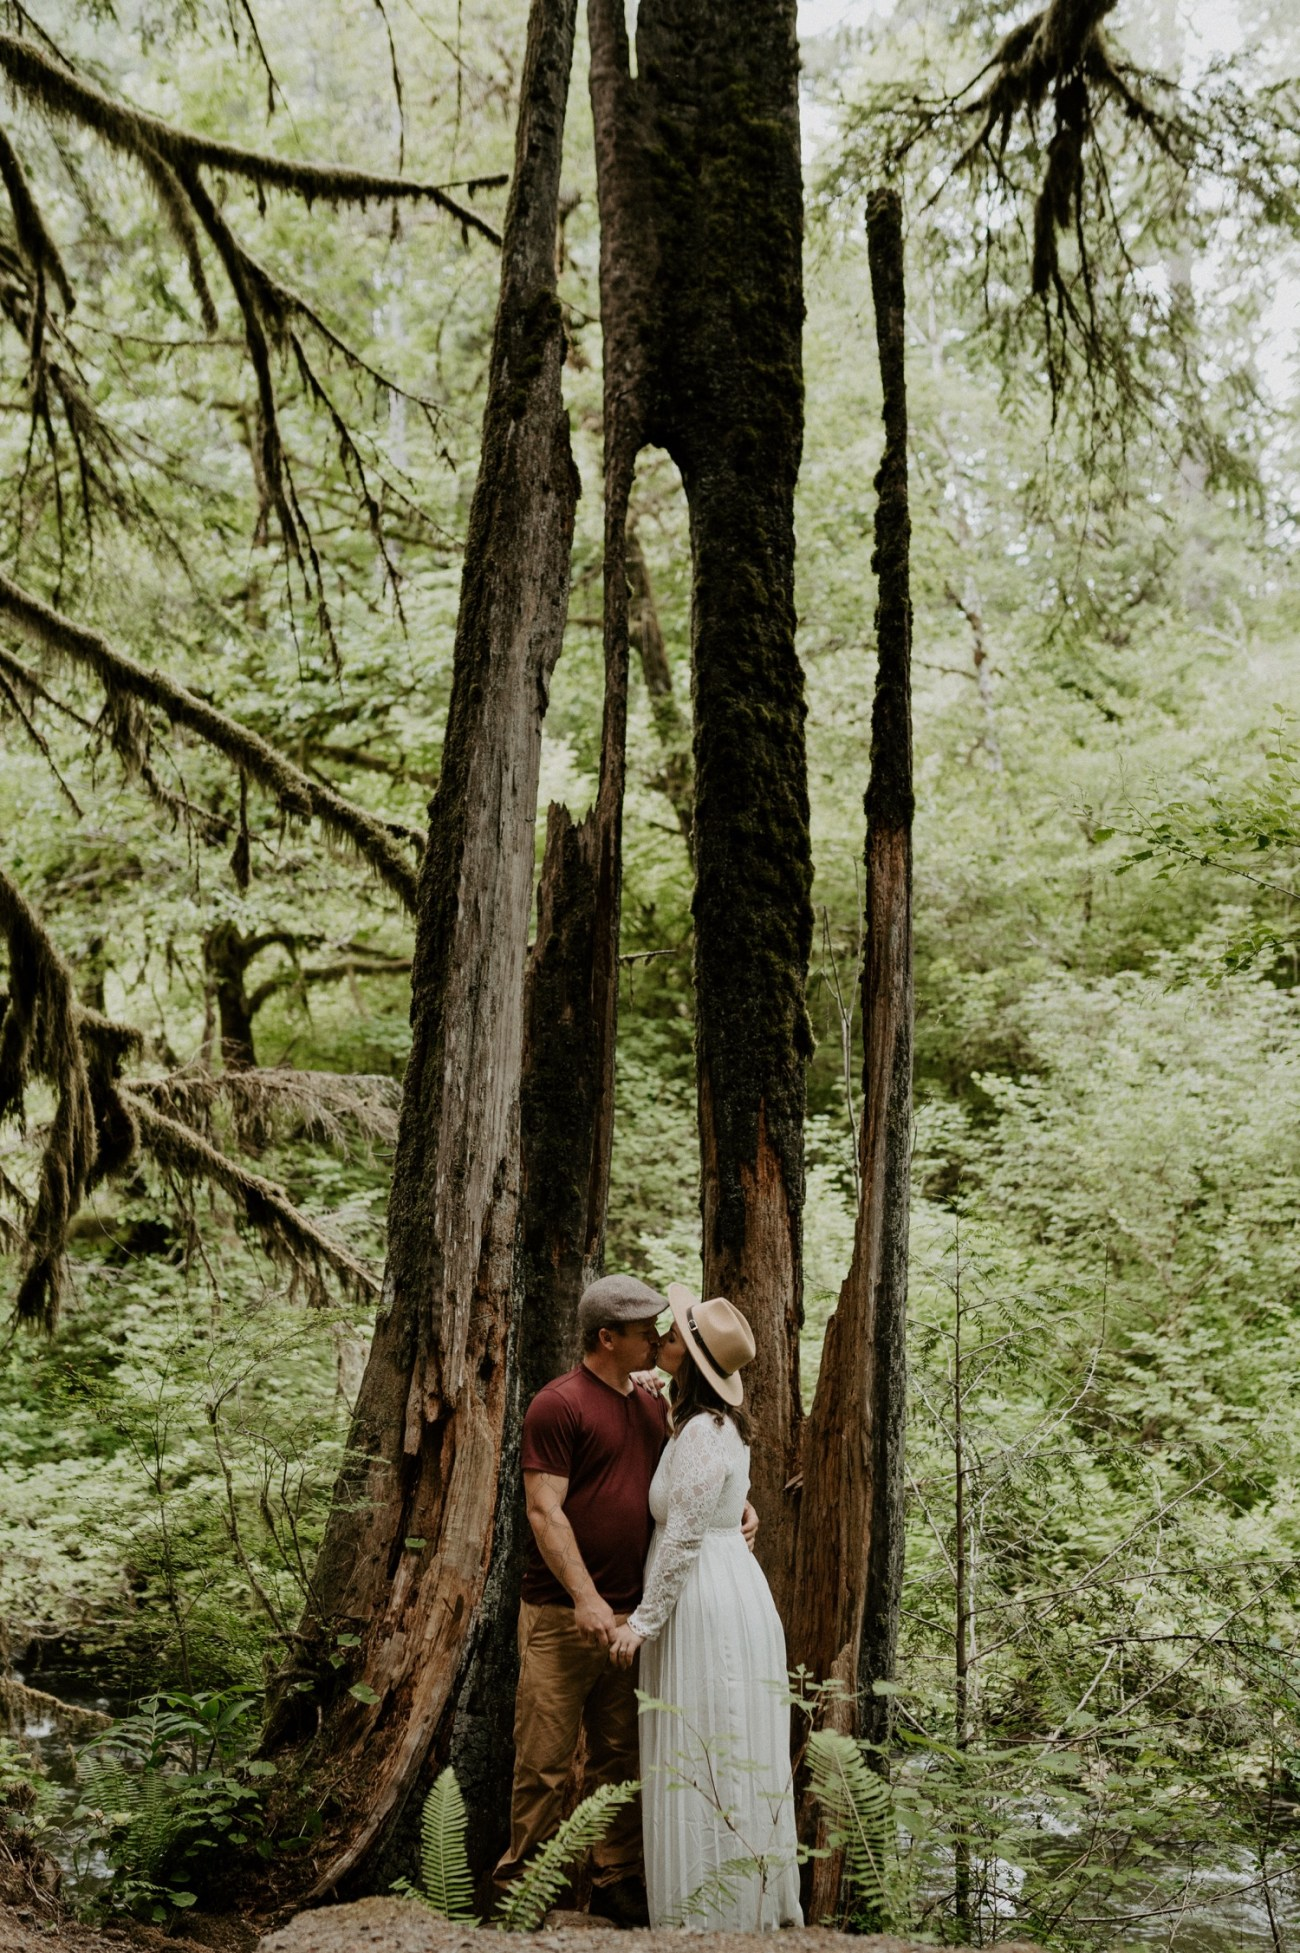 Silver Falls State Park Engagement Session North Falls Engagement Photos Portland Wedding Photographer Oregon Elopement Photographer Anais Possamai Photography 006